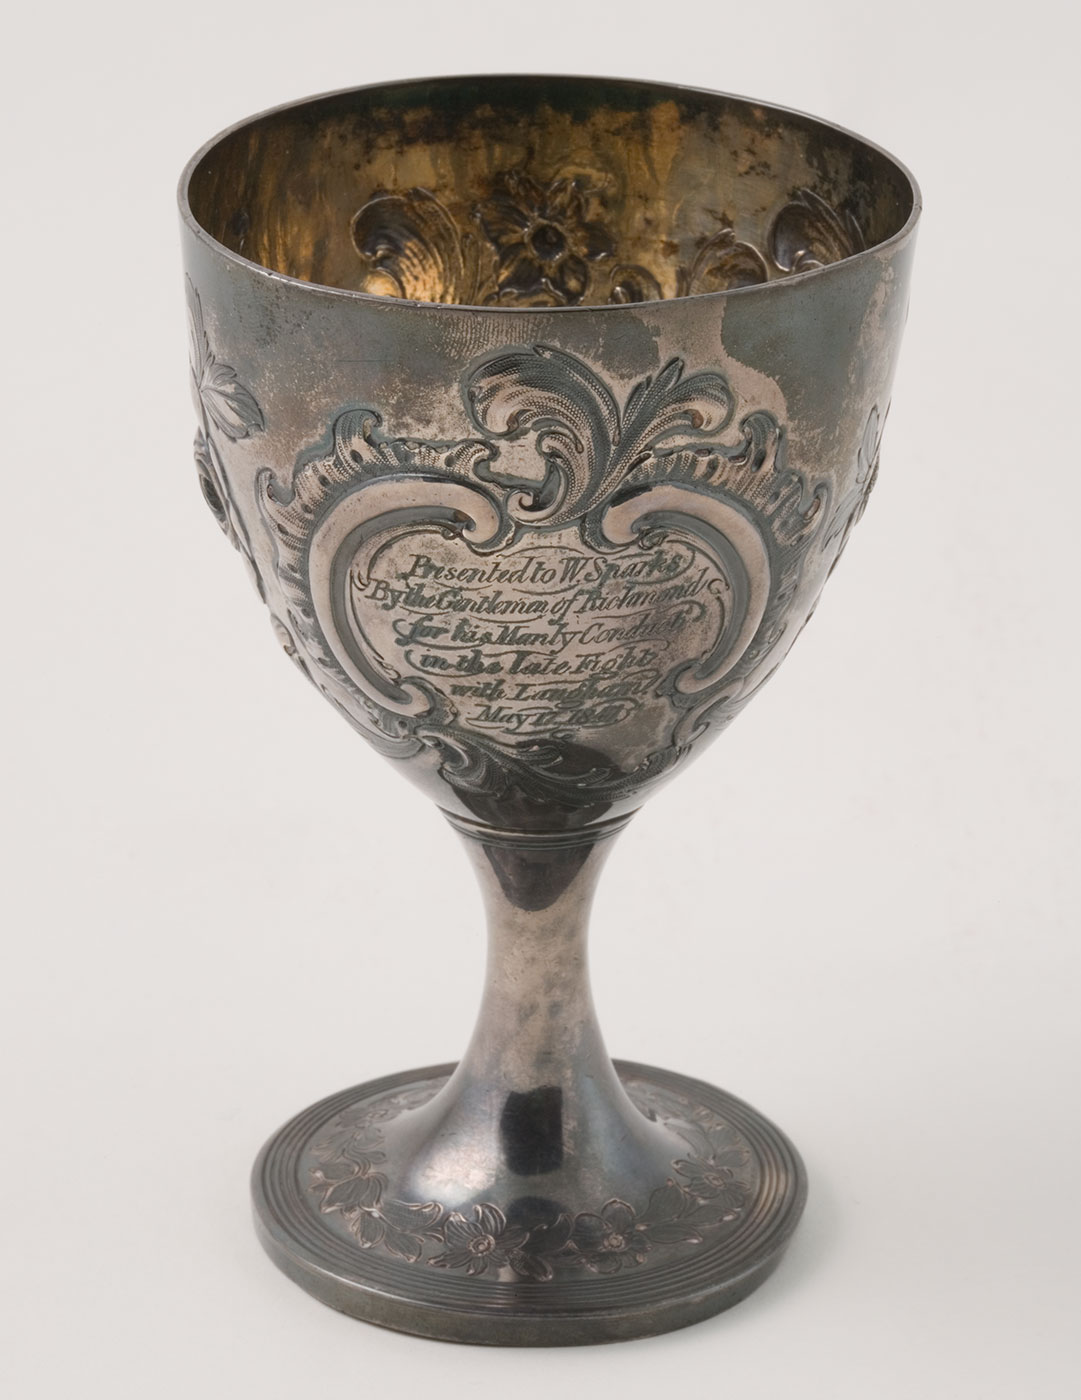 An engraved solid silver goblet.